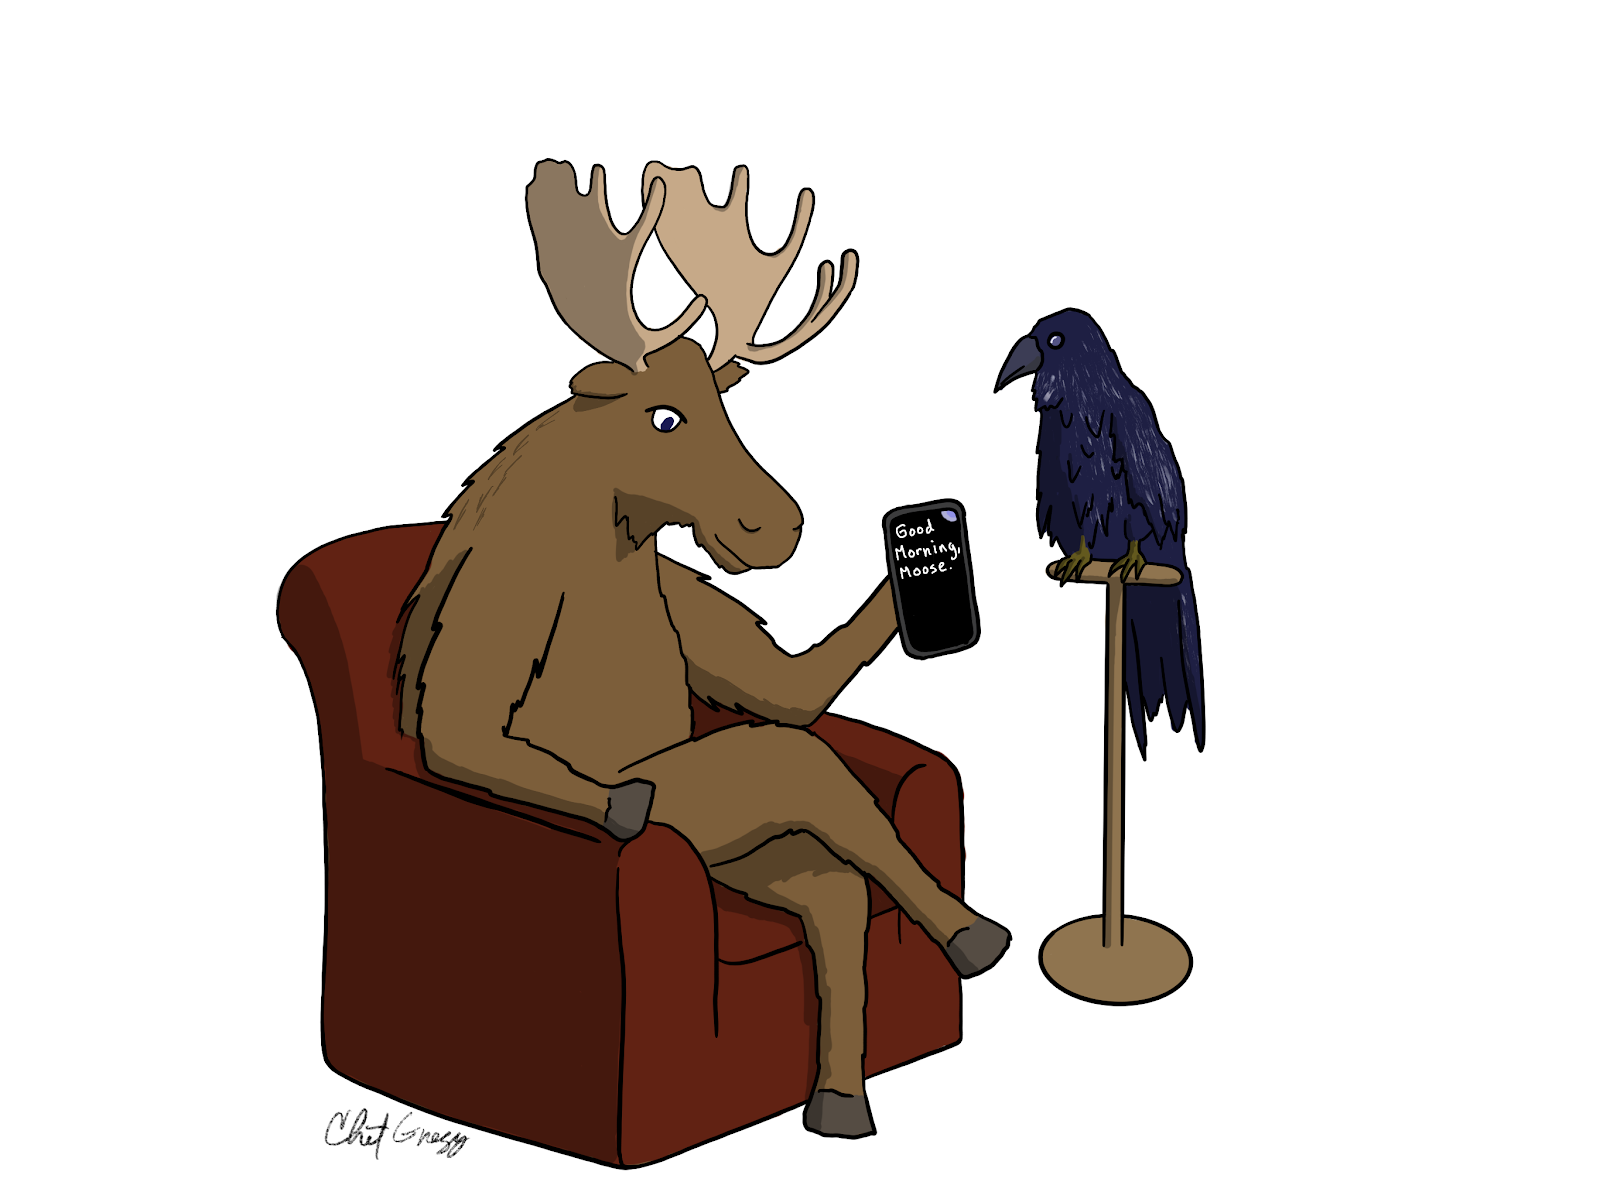 A moose is sitting on a couch holding a phone with Live Transcribe running on it . A raven, perched on a stand, watches her.